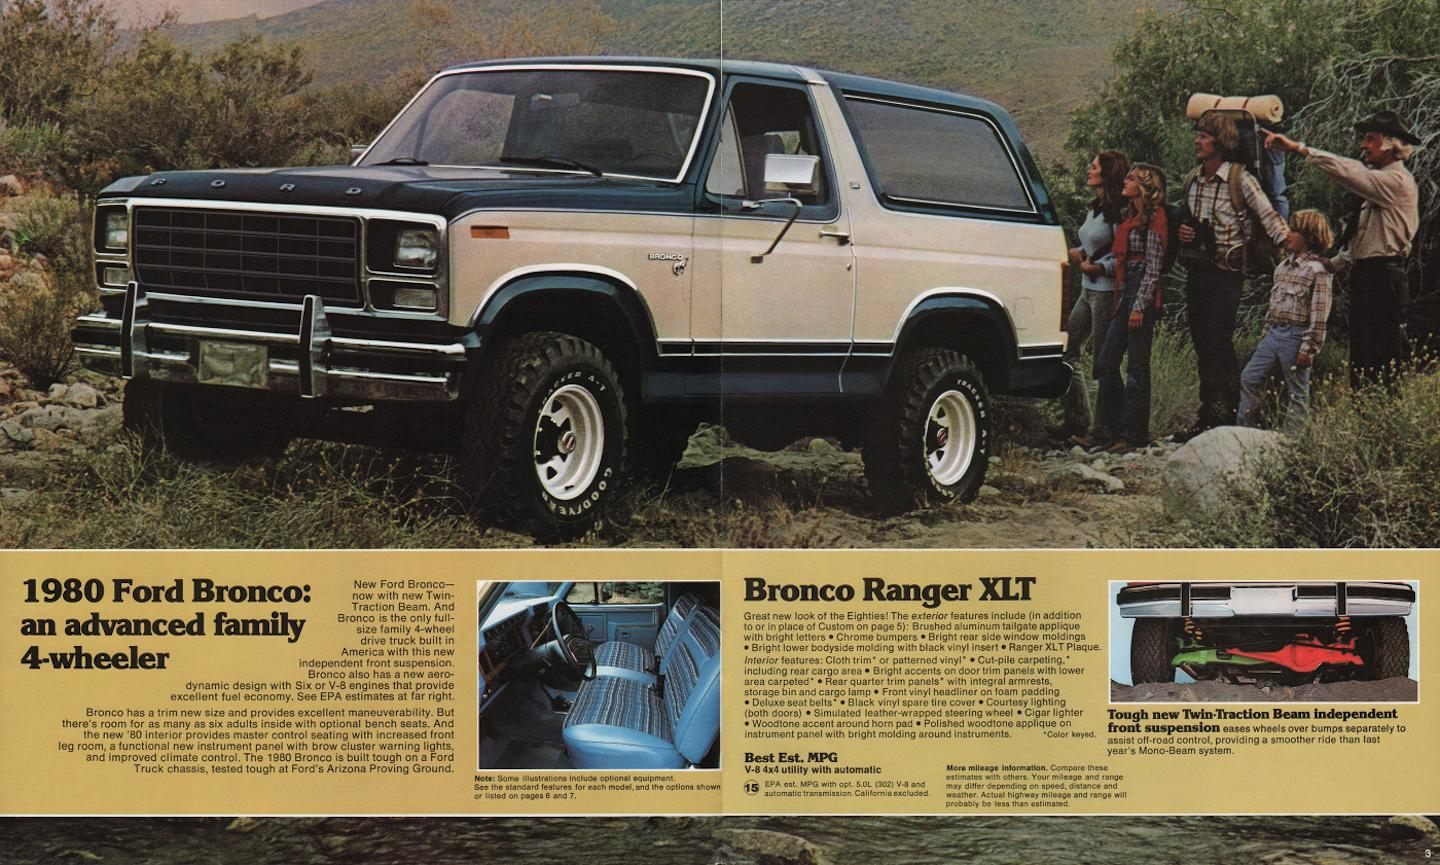 third-generation Ford Bronco, Ford Bronco, Bronco, third-generation Bronco